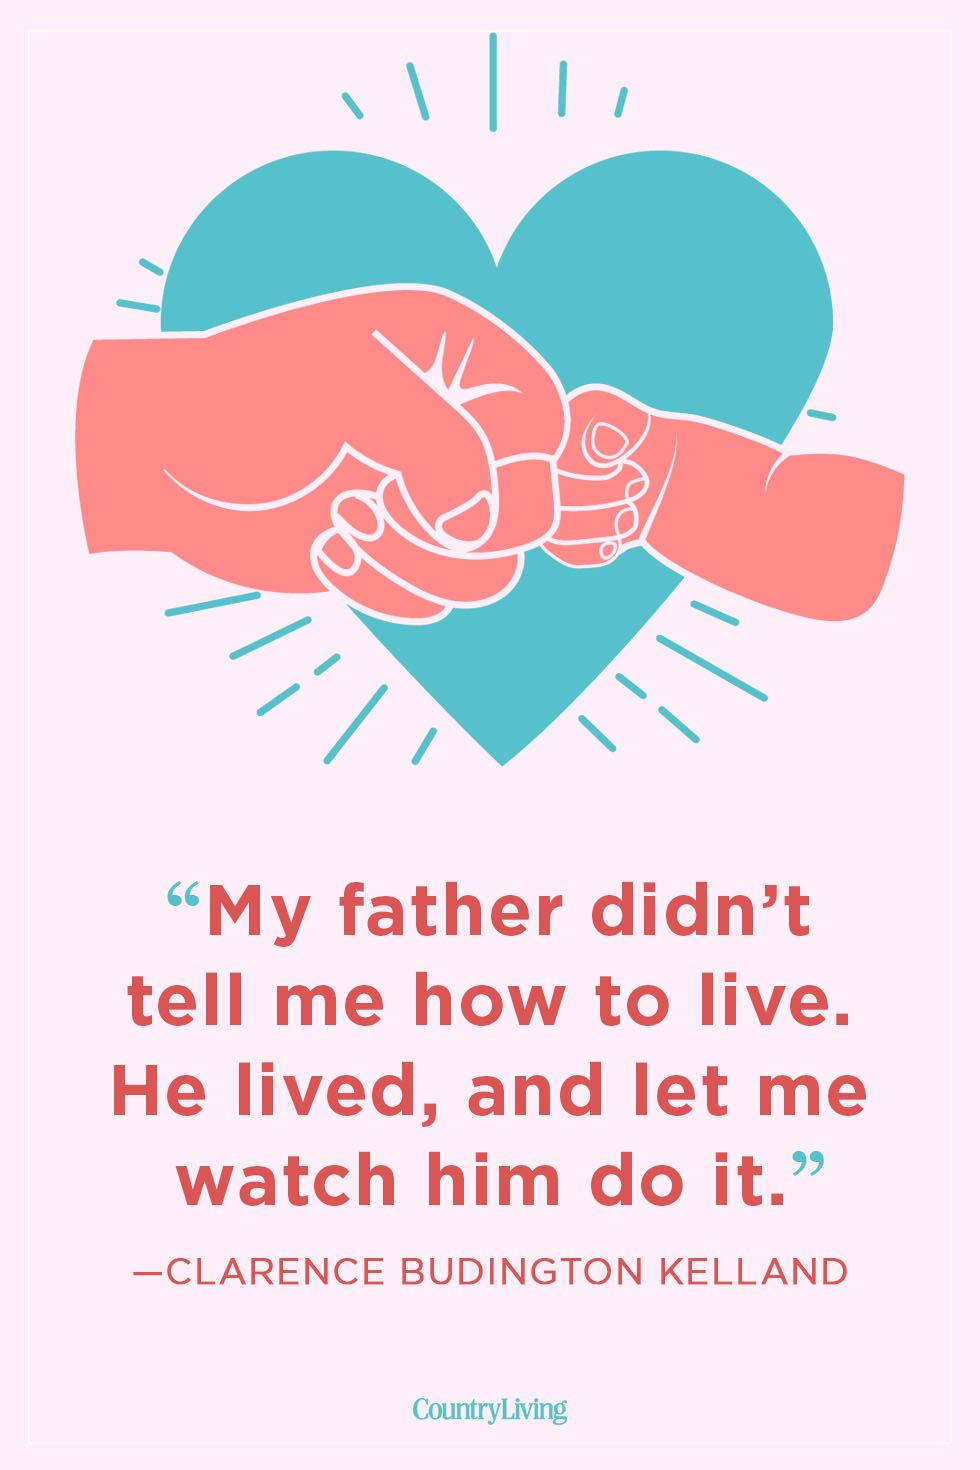 Clarence Budington Kelland father daughter quote